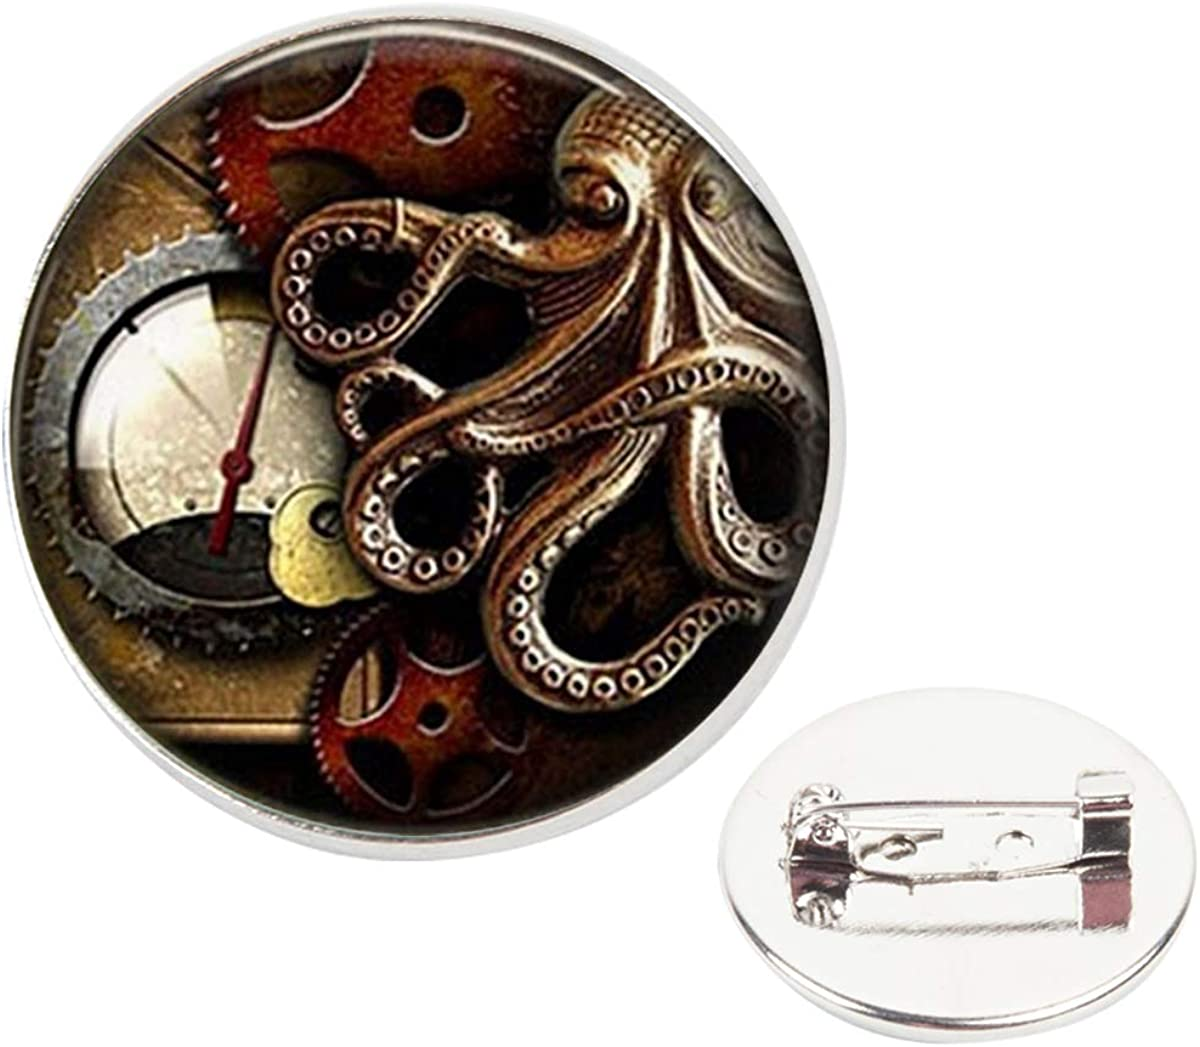 Pinback Buttons Badges Pins Octopus Clock Steampunk Lapel Pin Brooch Clip Trendy Accessory Jacket T-Shirt Bag Hat Shoe